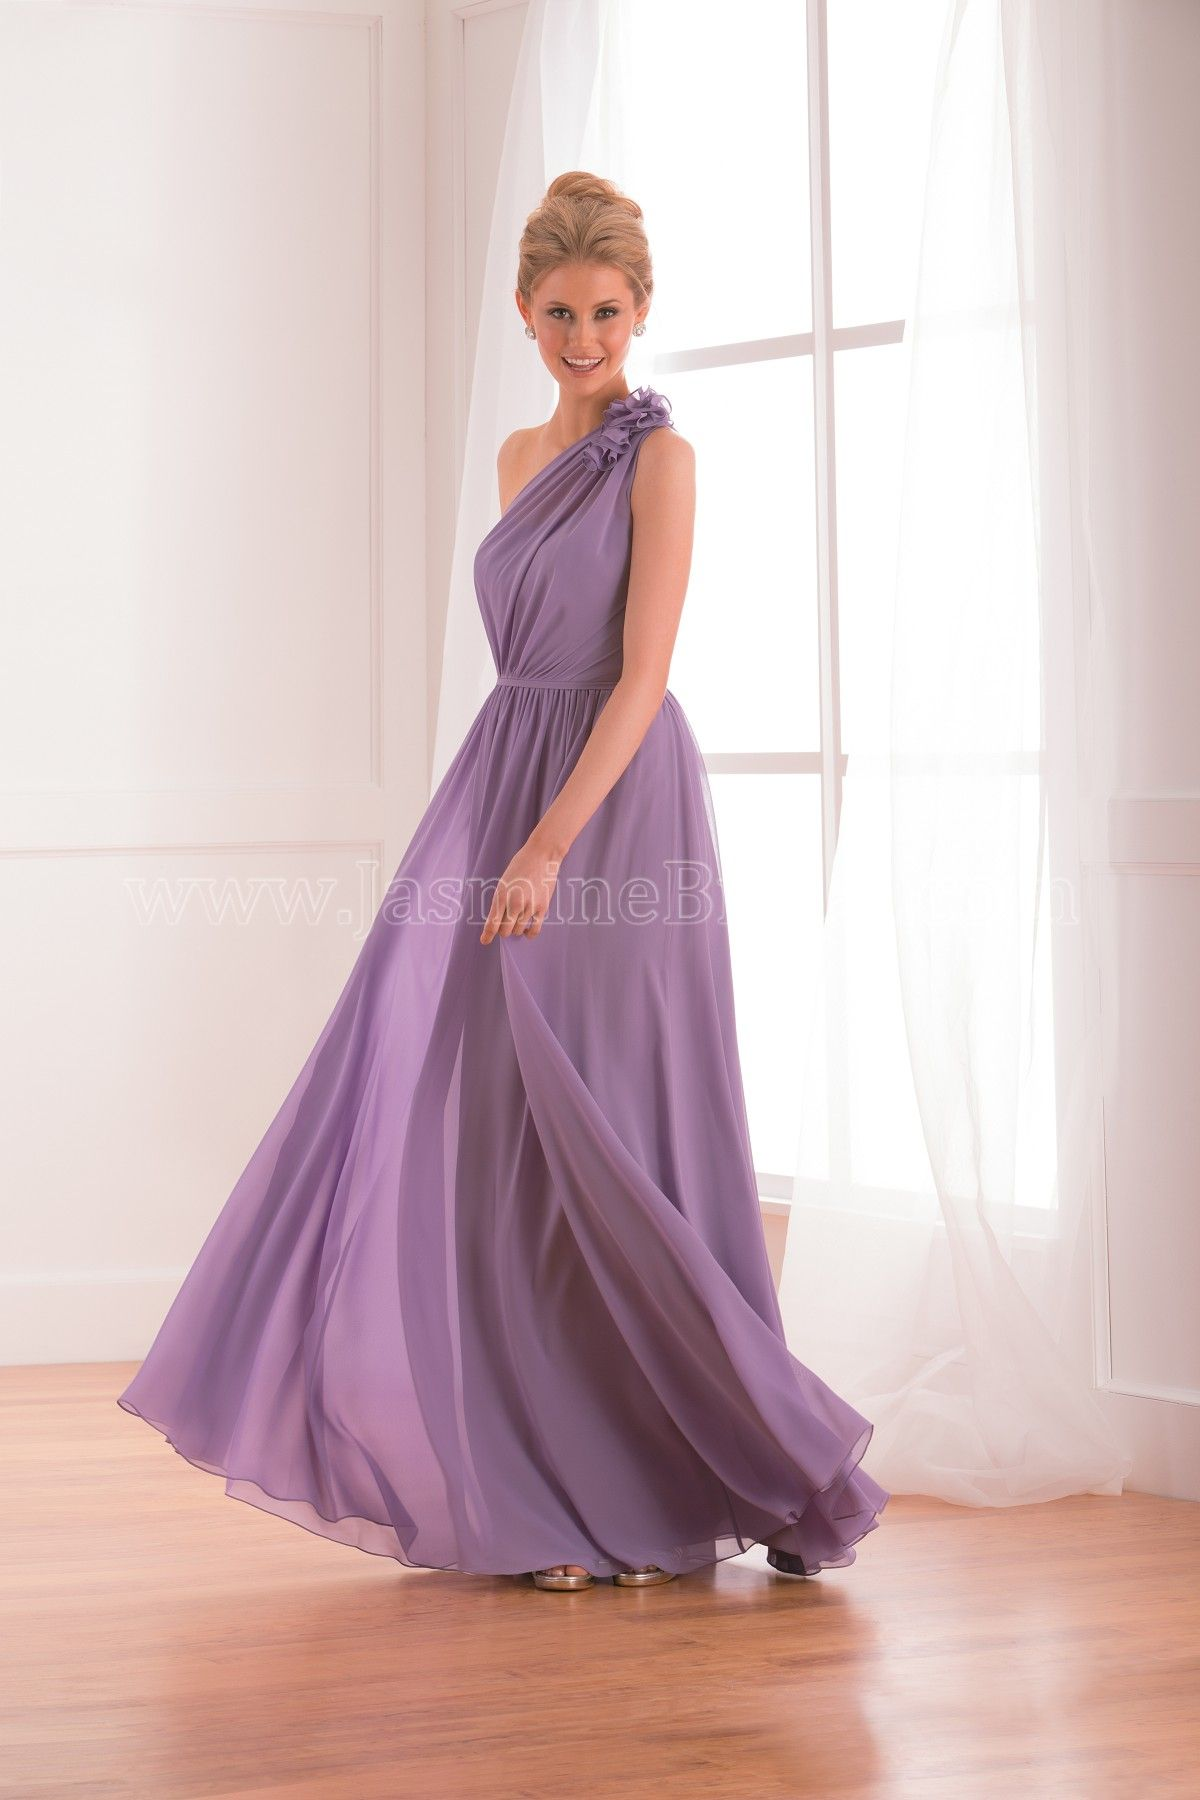 Jasmine Bridal - B2 Style B173020 in Poly Chiffon, color Boysenberry ...